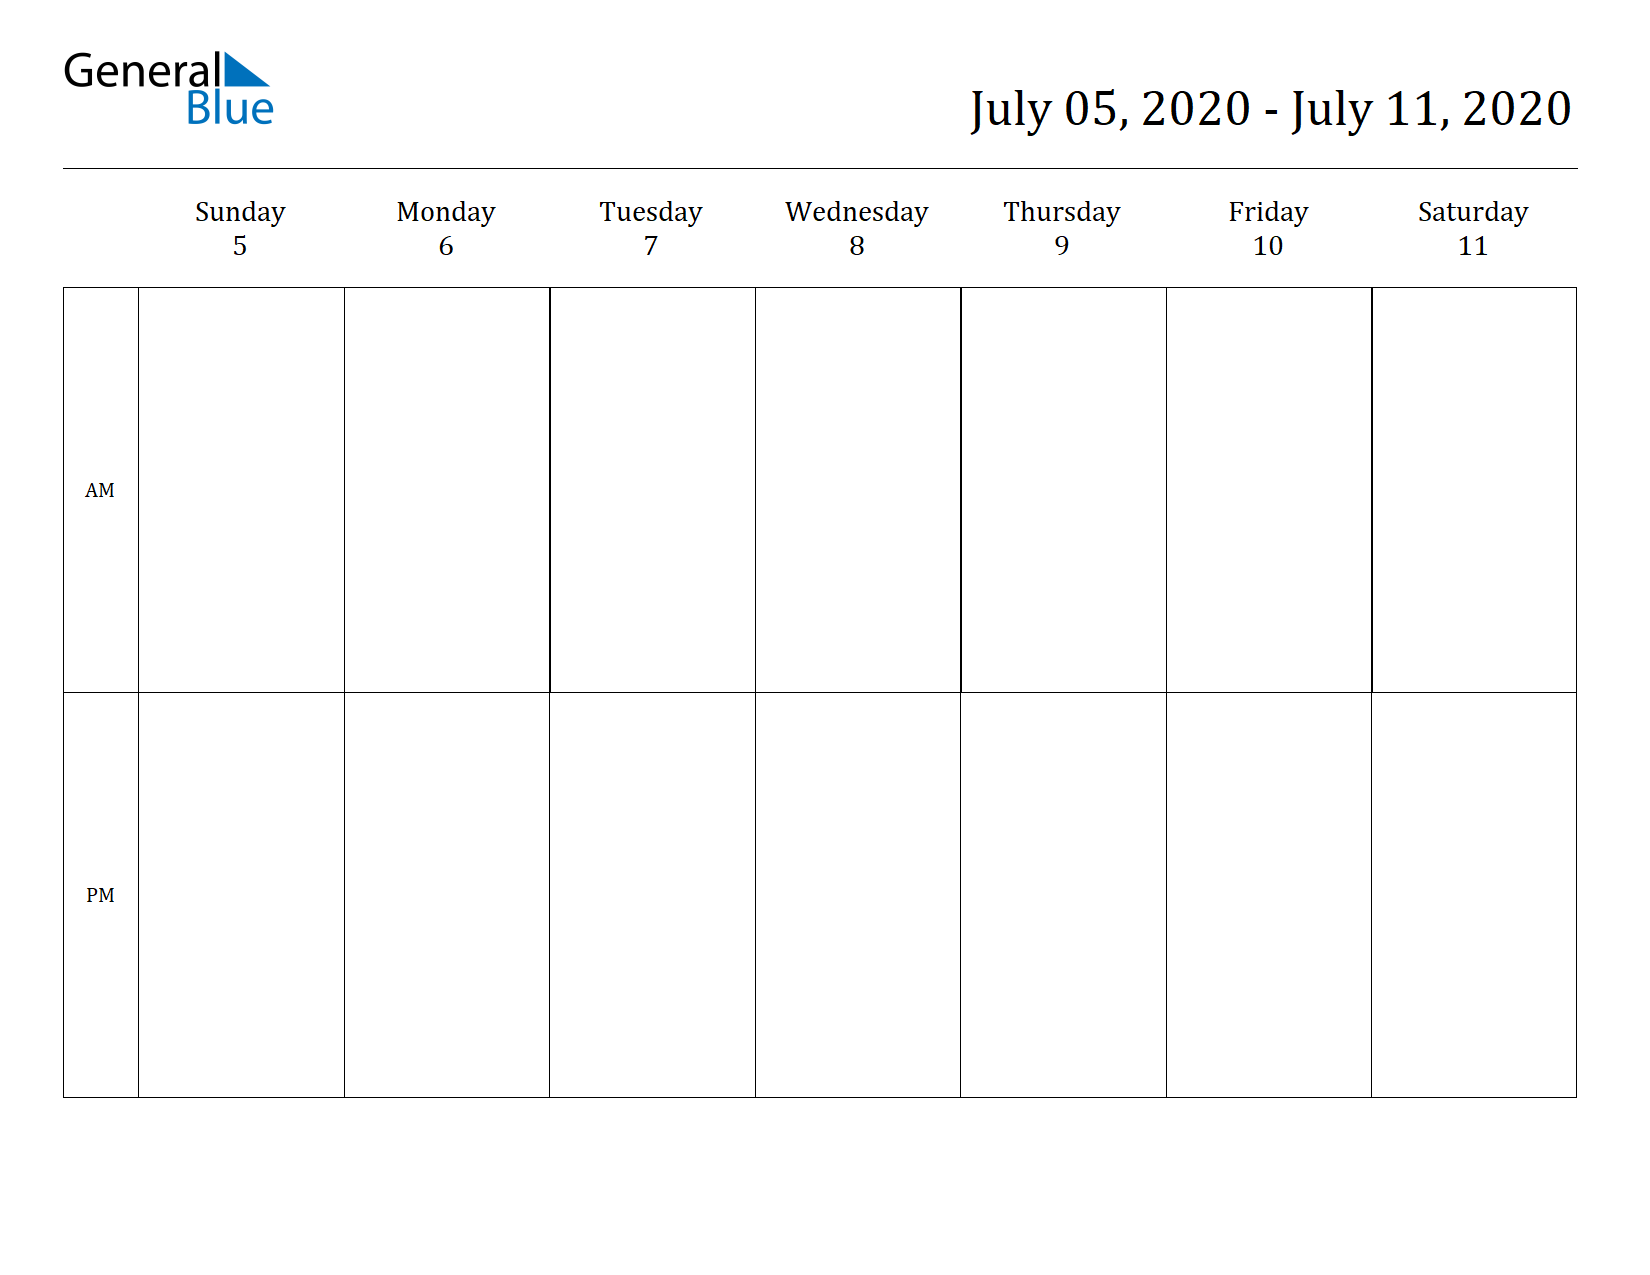 Weekly Calendar for Jul 05, 2020 to Jul 11, 2020